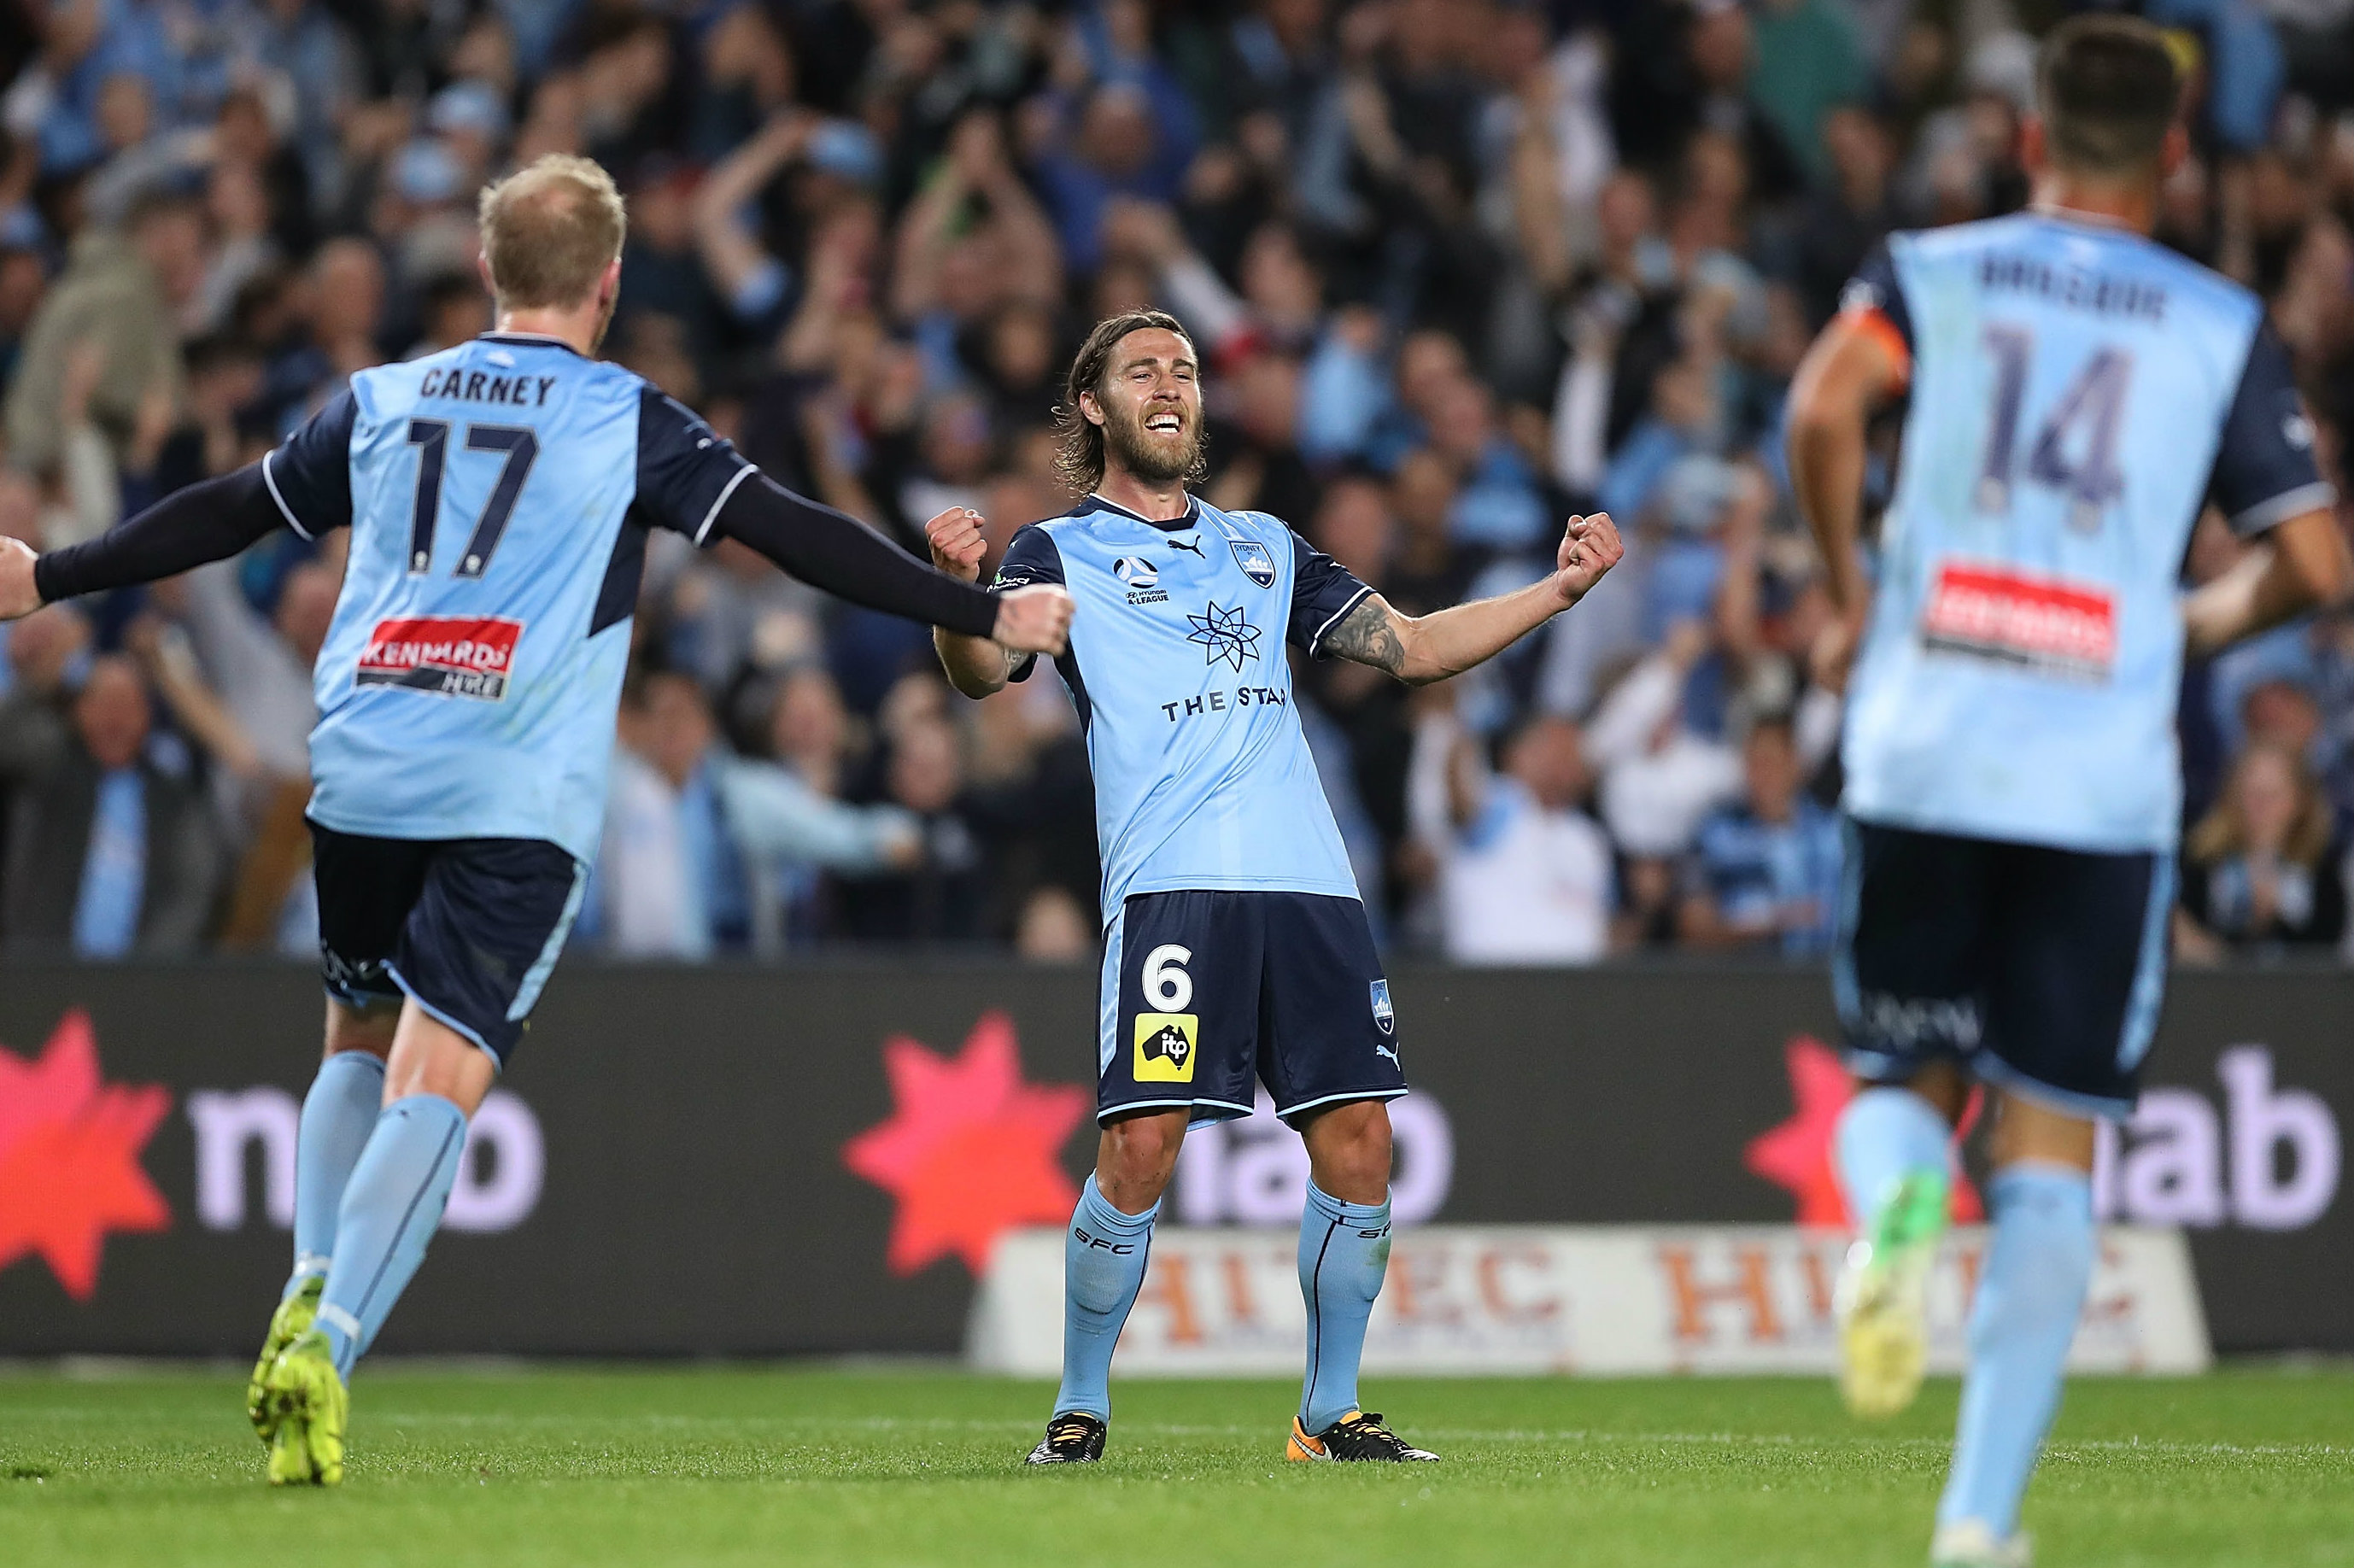 Josh Brillante celebrates his goal in the Sydney Derby.